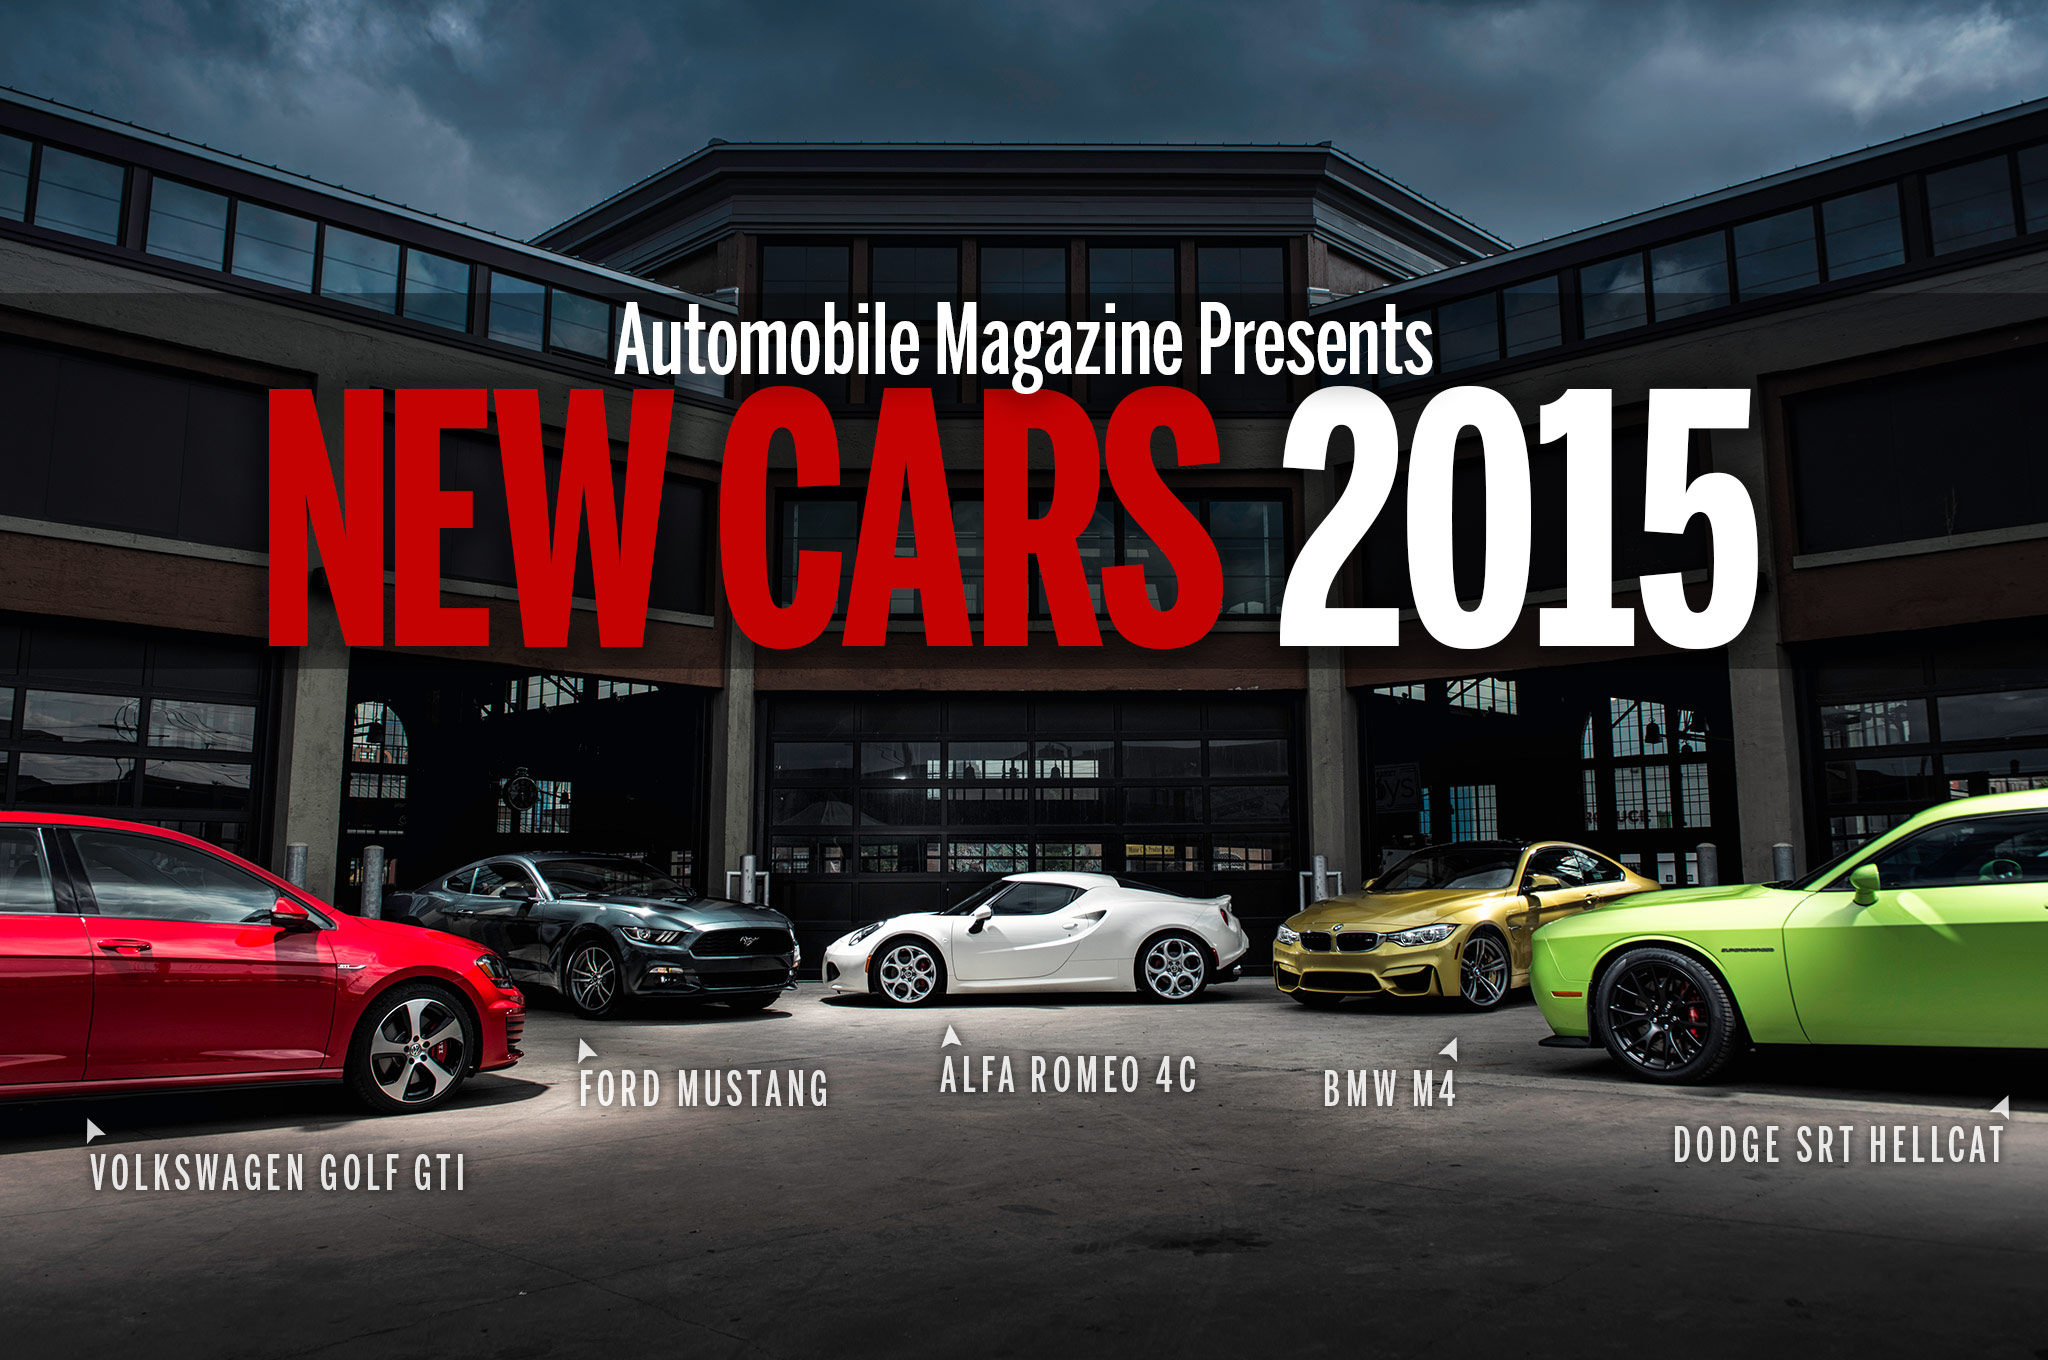 New Cars 2014 Graphics Automobile Lead